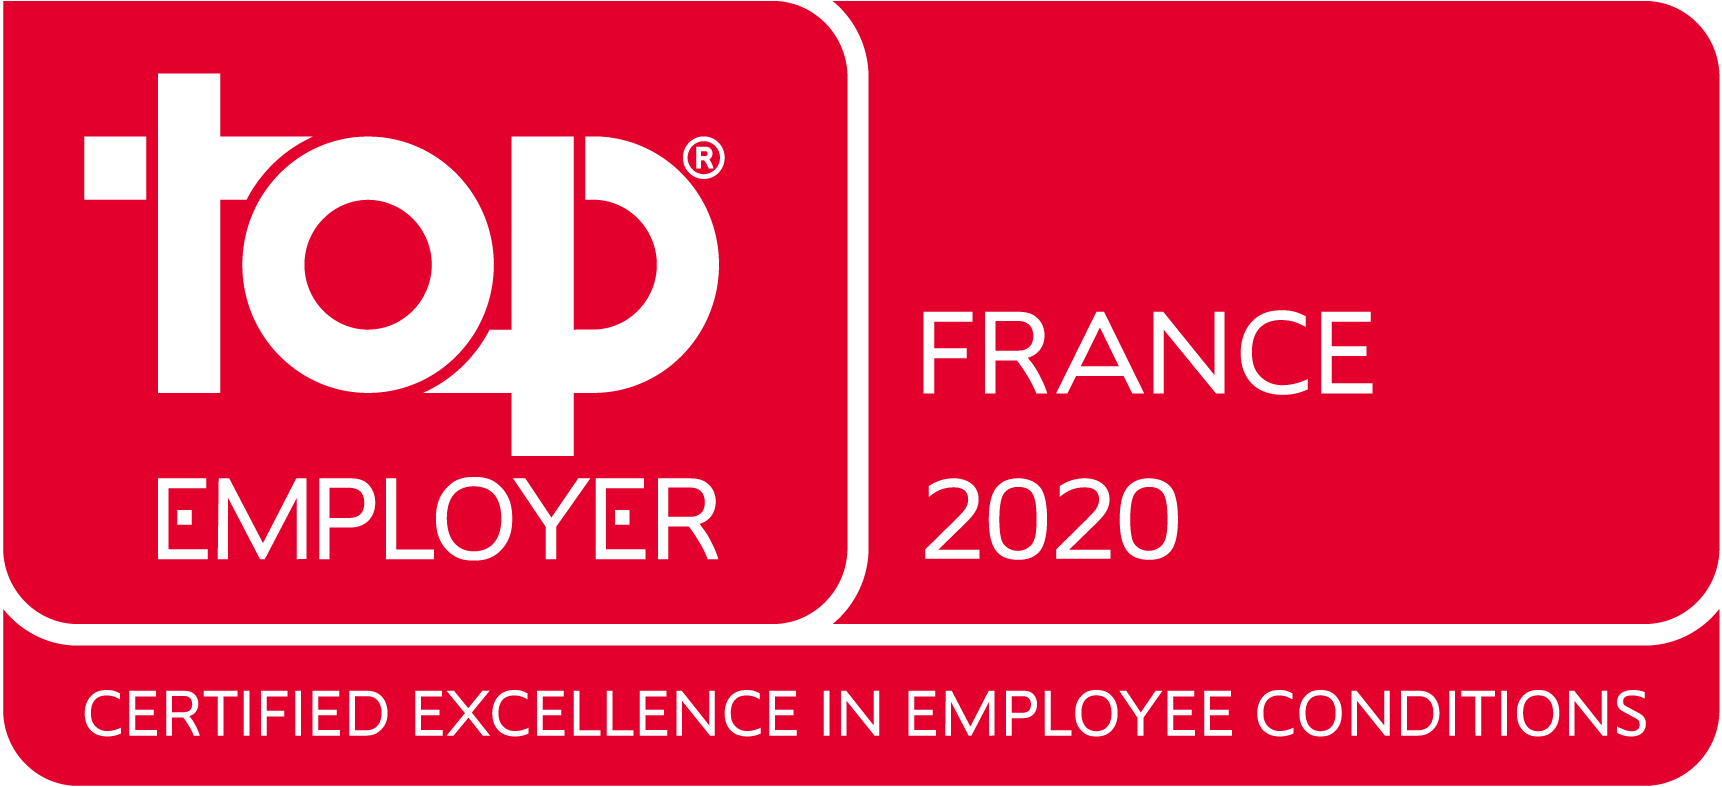 Top Employer France